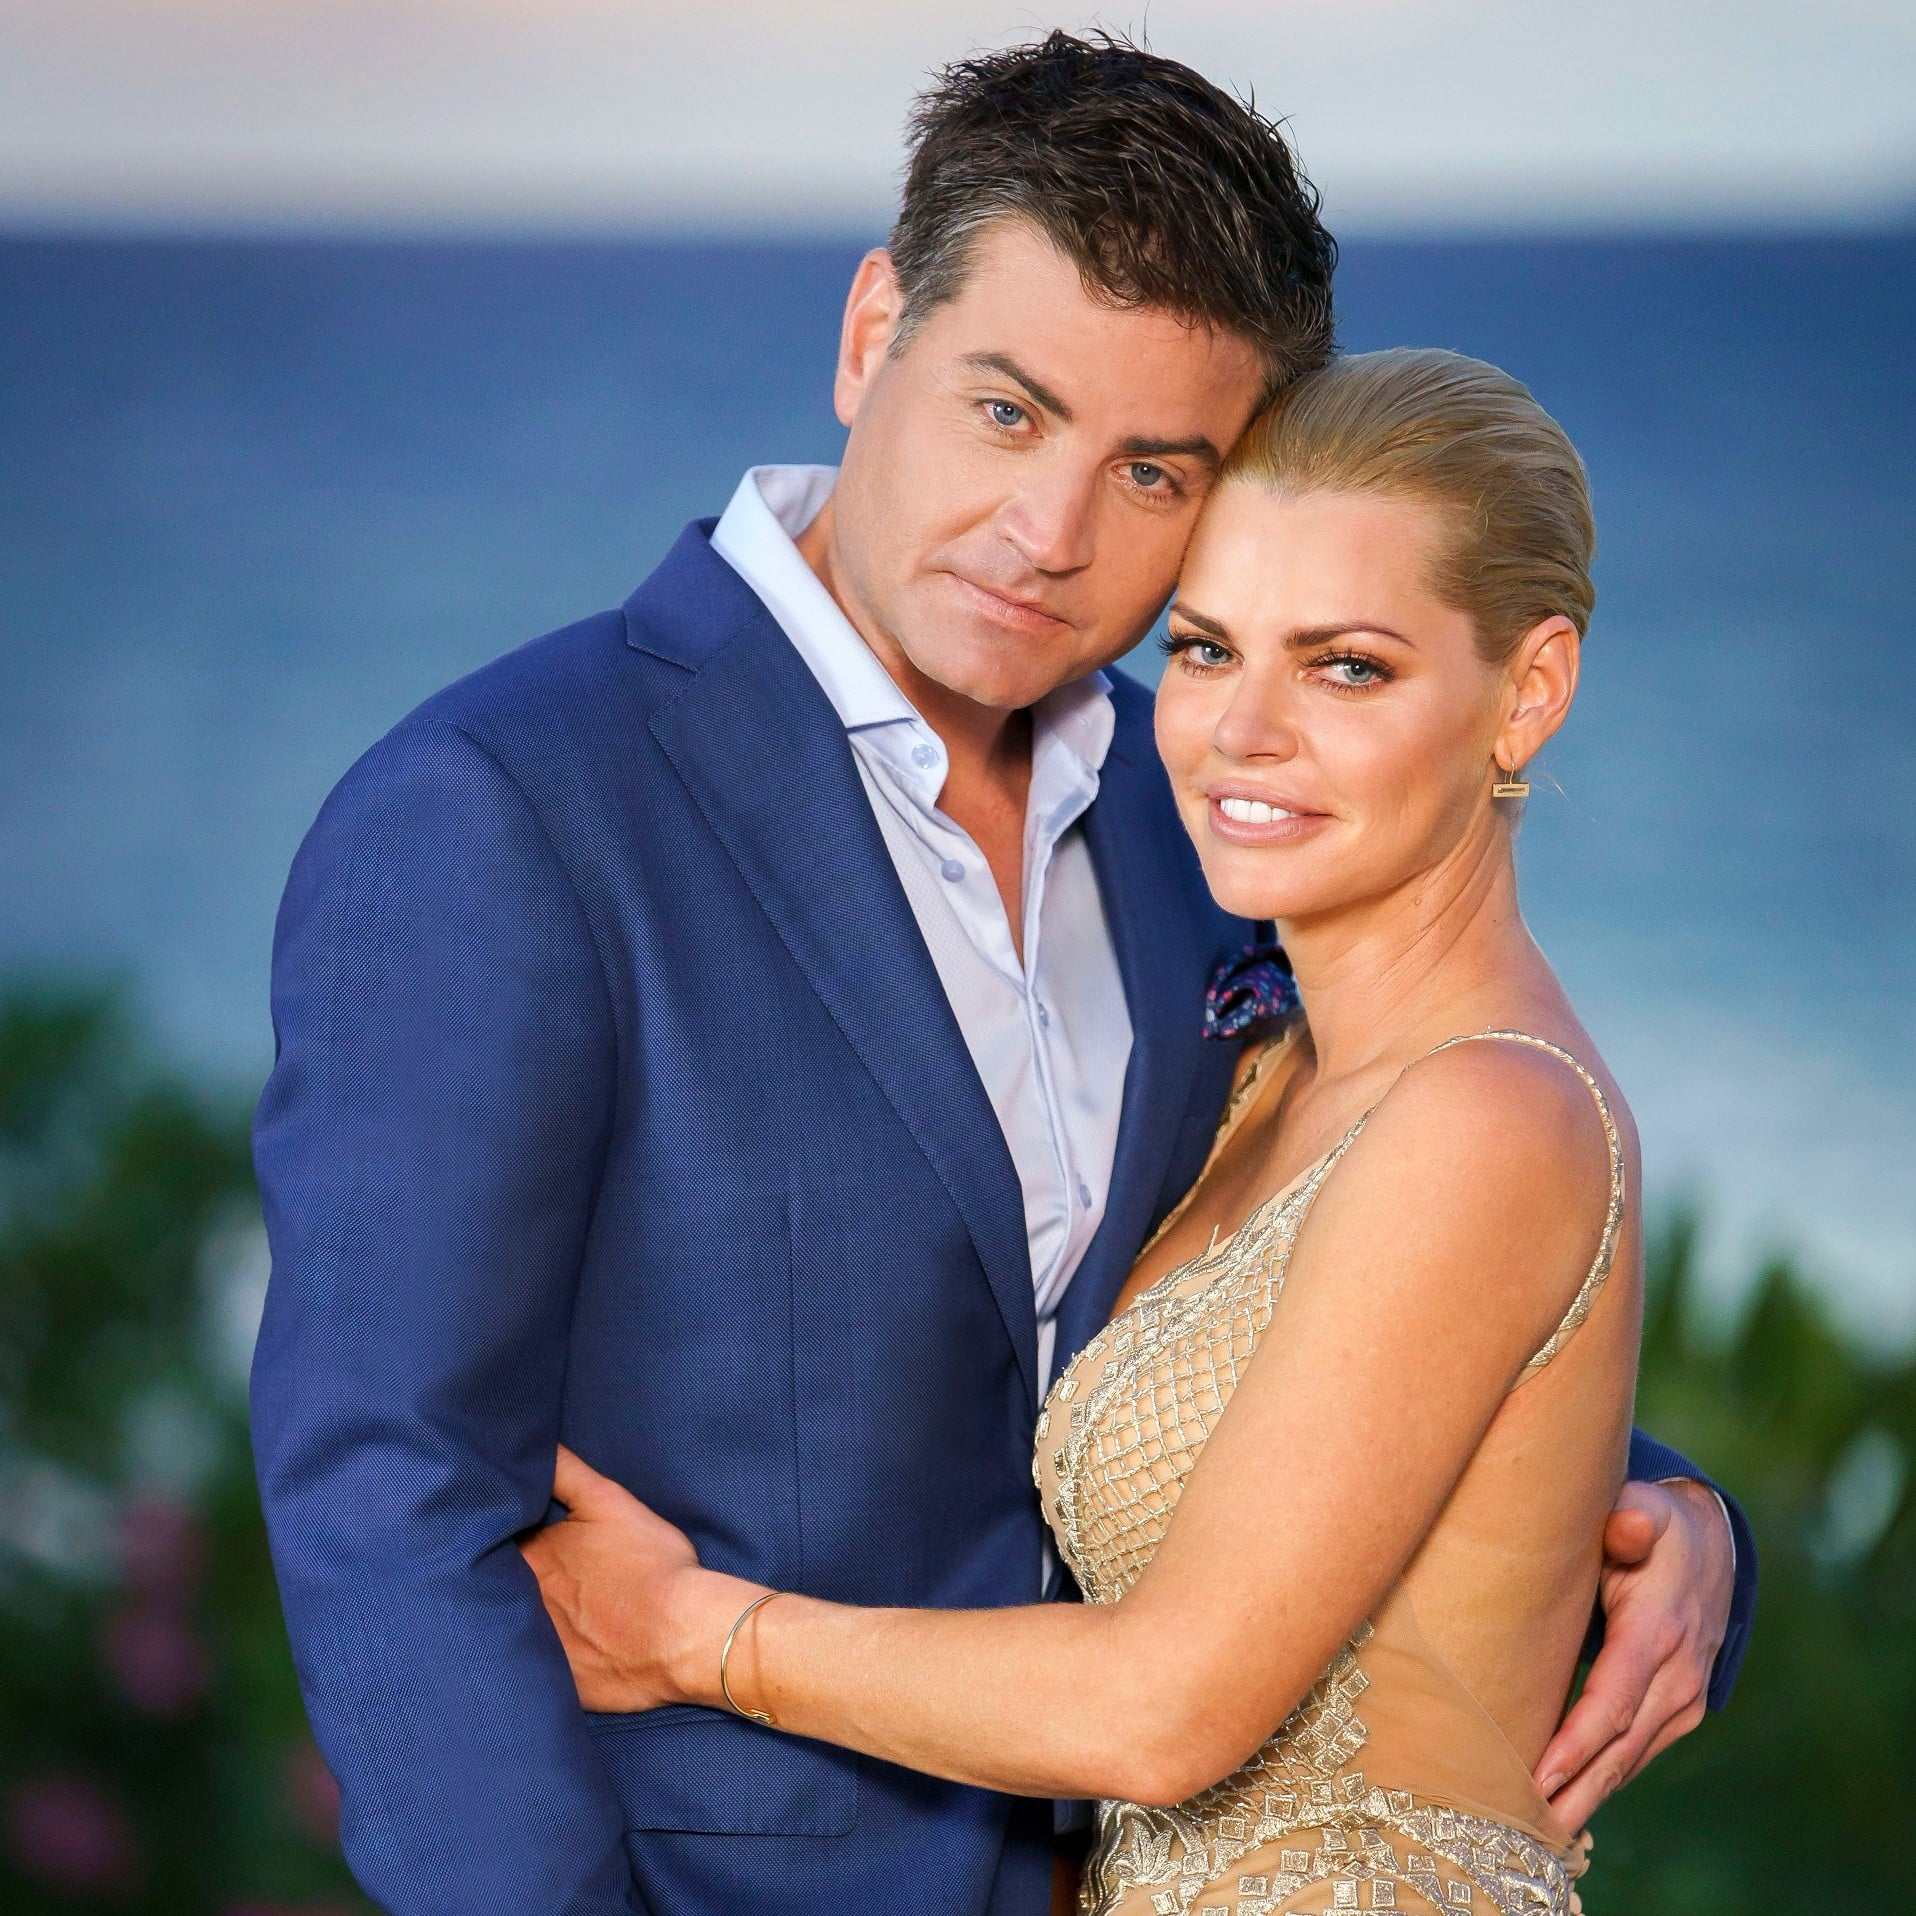 Stu Laundy Wins The Bachelorette Sophie Monk Video